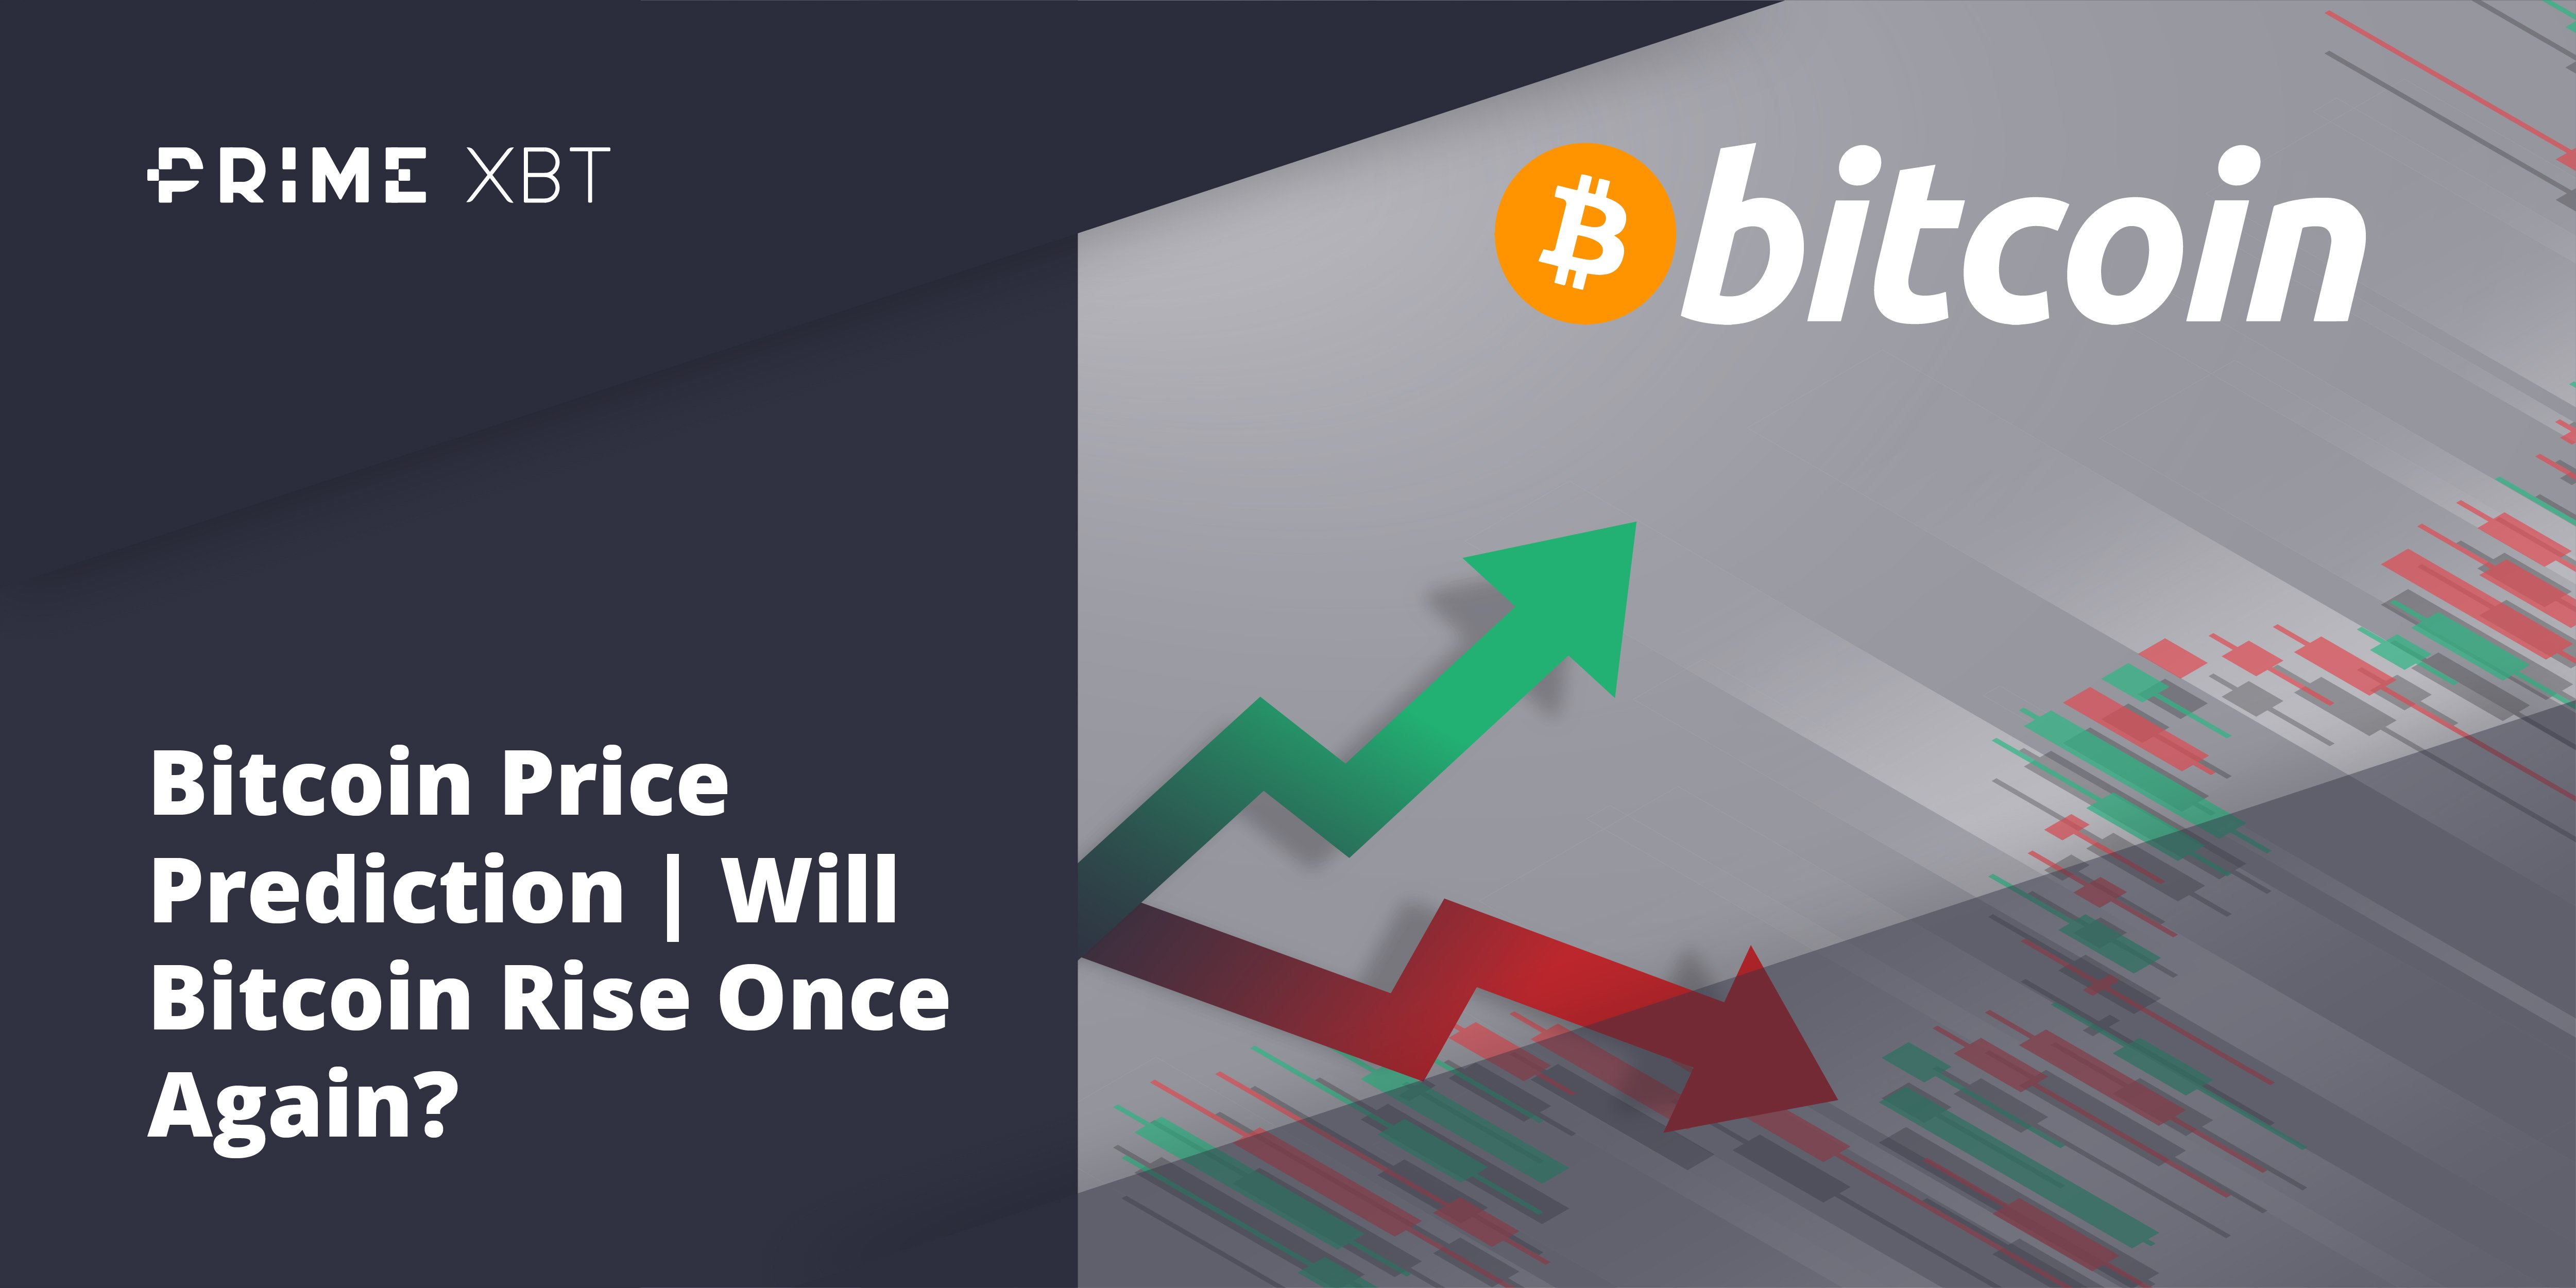 Bitcoin Price Prediction | Will Bitcoin Rise Once Again? - btc 1